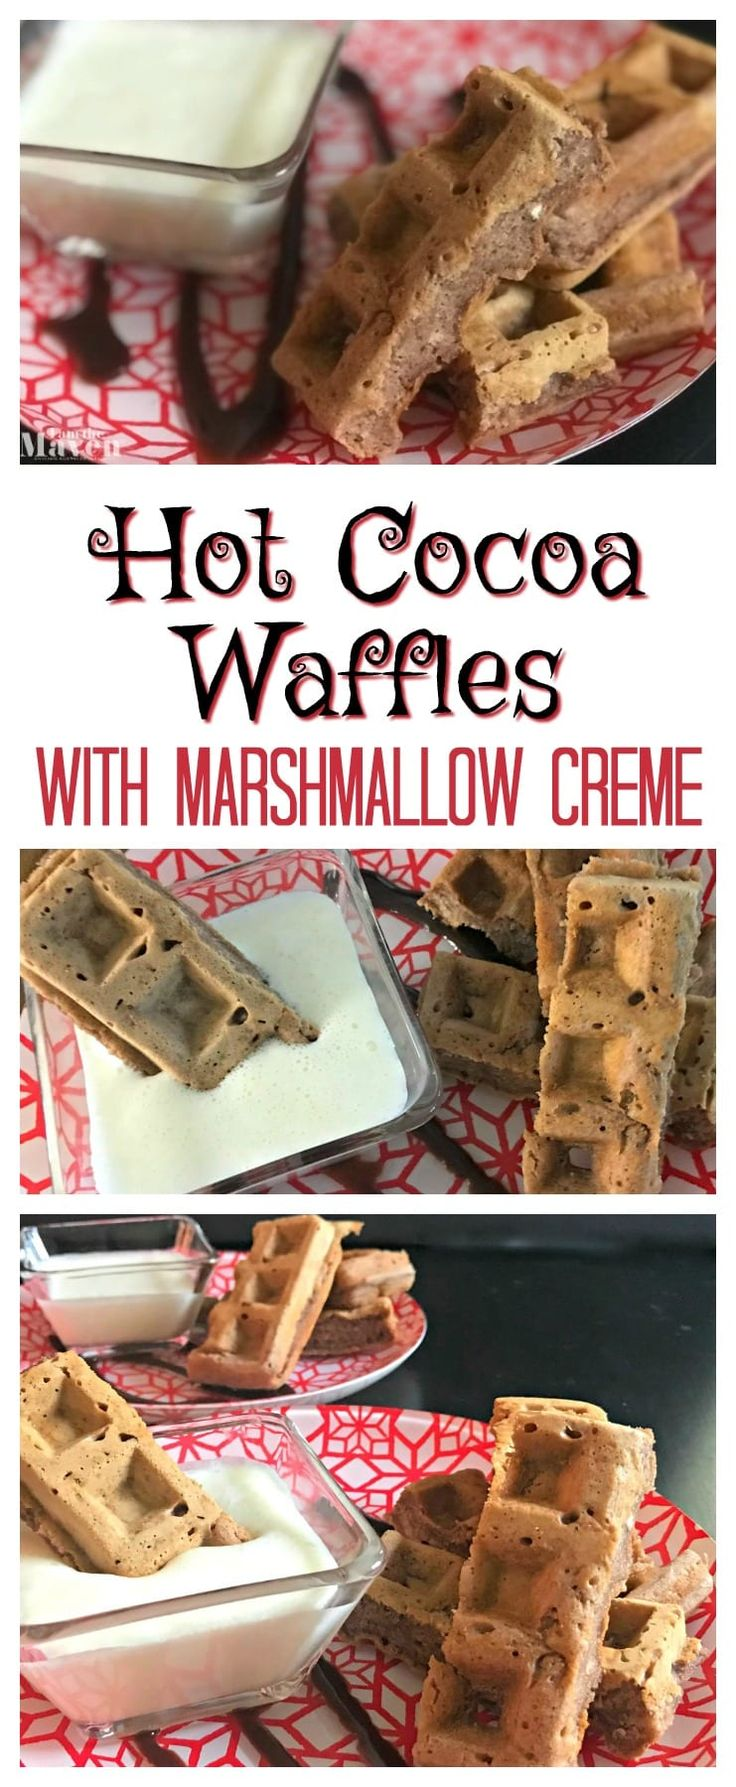 What I love about this recipe for Hot Cocoa Waffles is that I don't have to bust out my stand mixer to make it. A hot chocolate waffle? YUM! AD via @iamthemaven